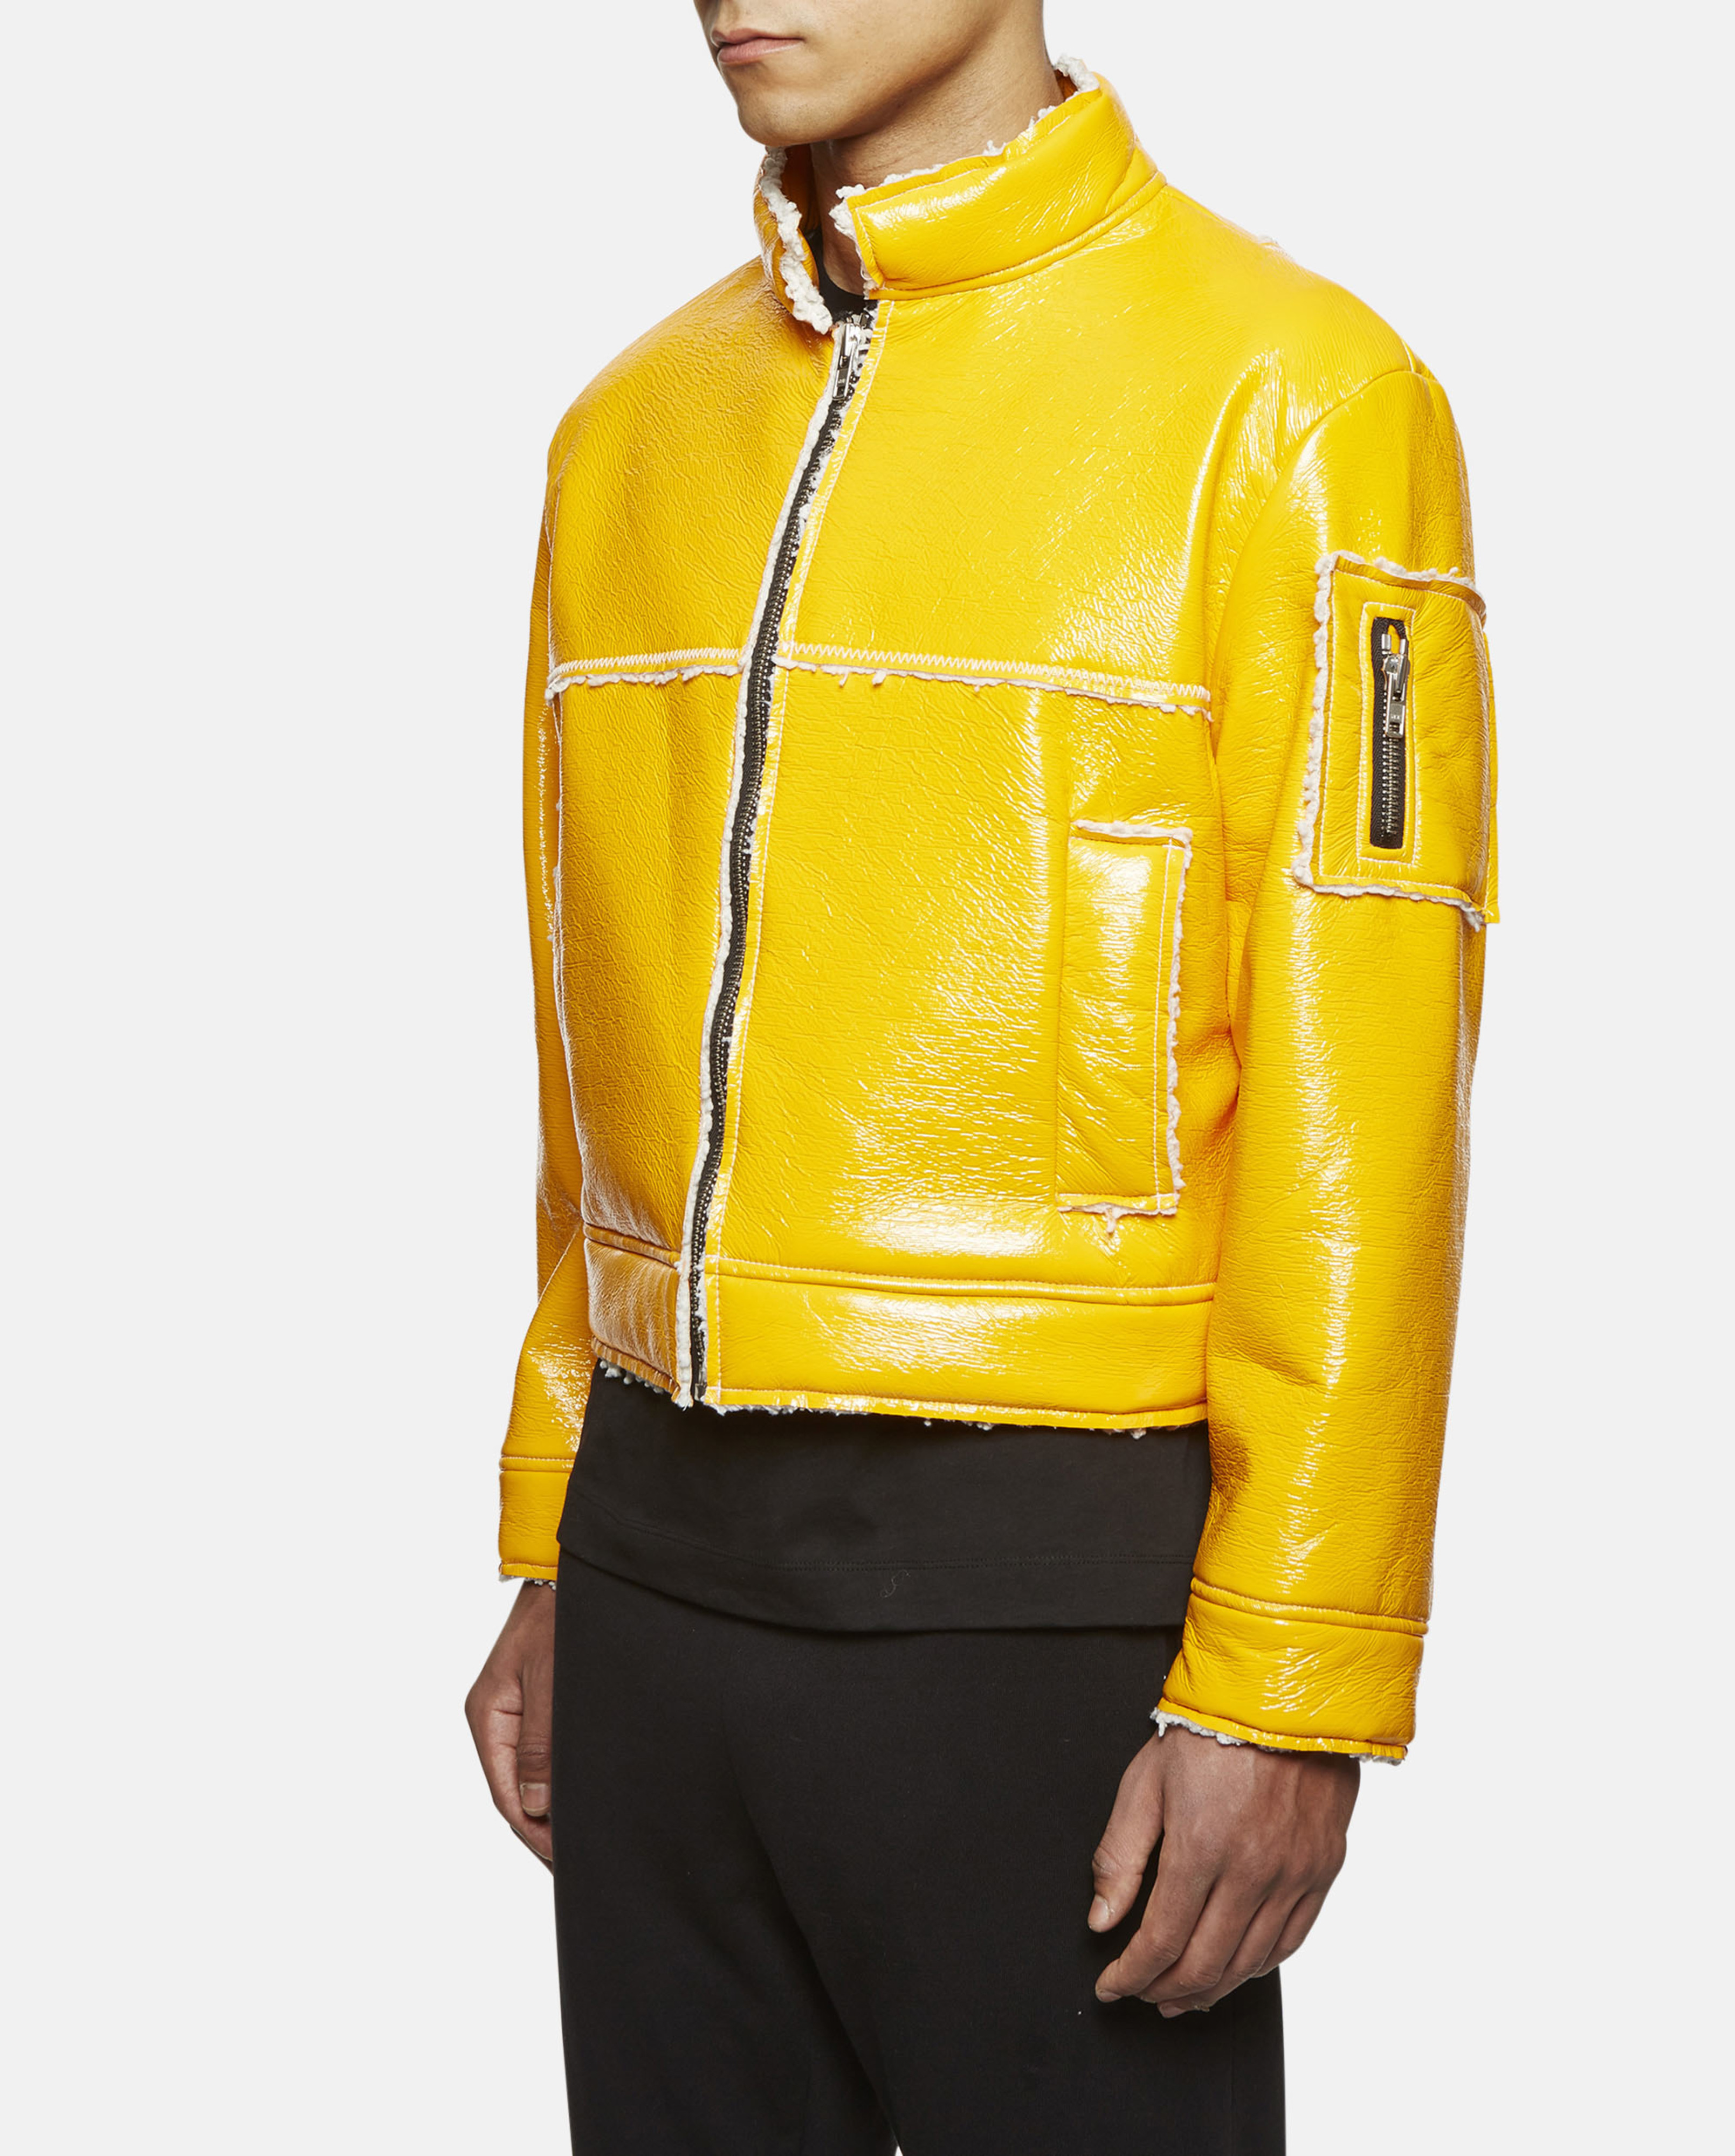 Gosha rubchinskiy Faux Sheepskin Short Jacket in Yellow for Men | Lyst